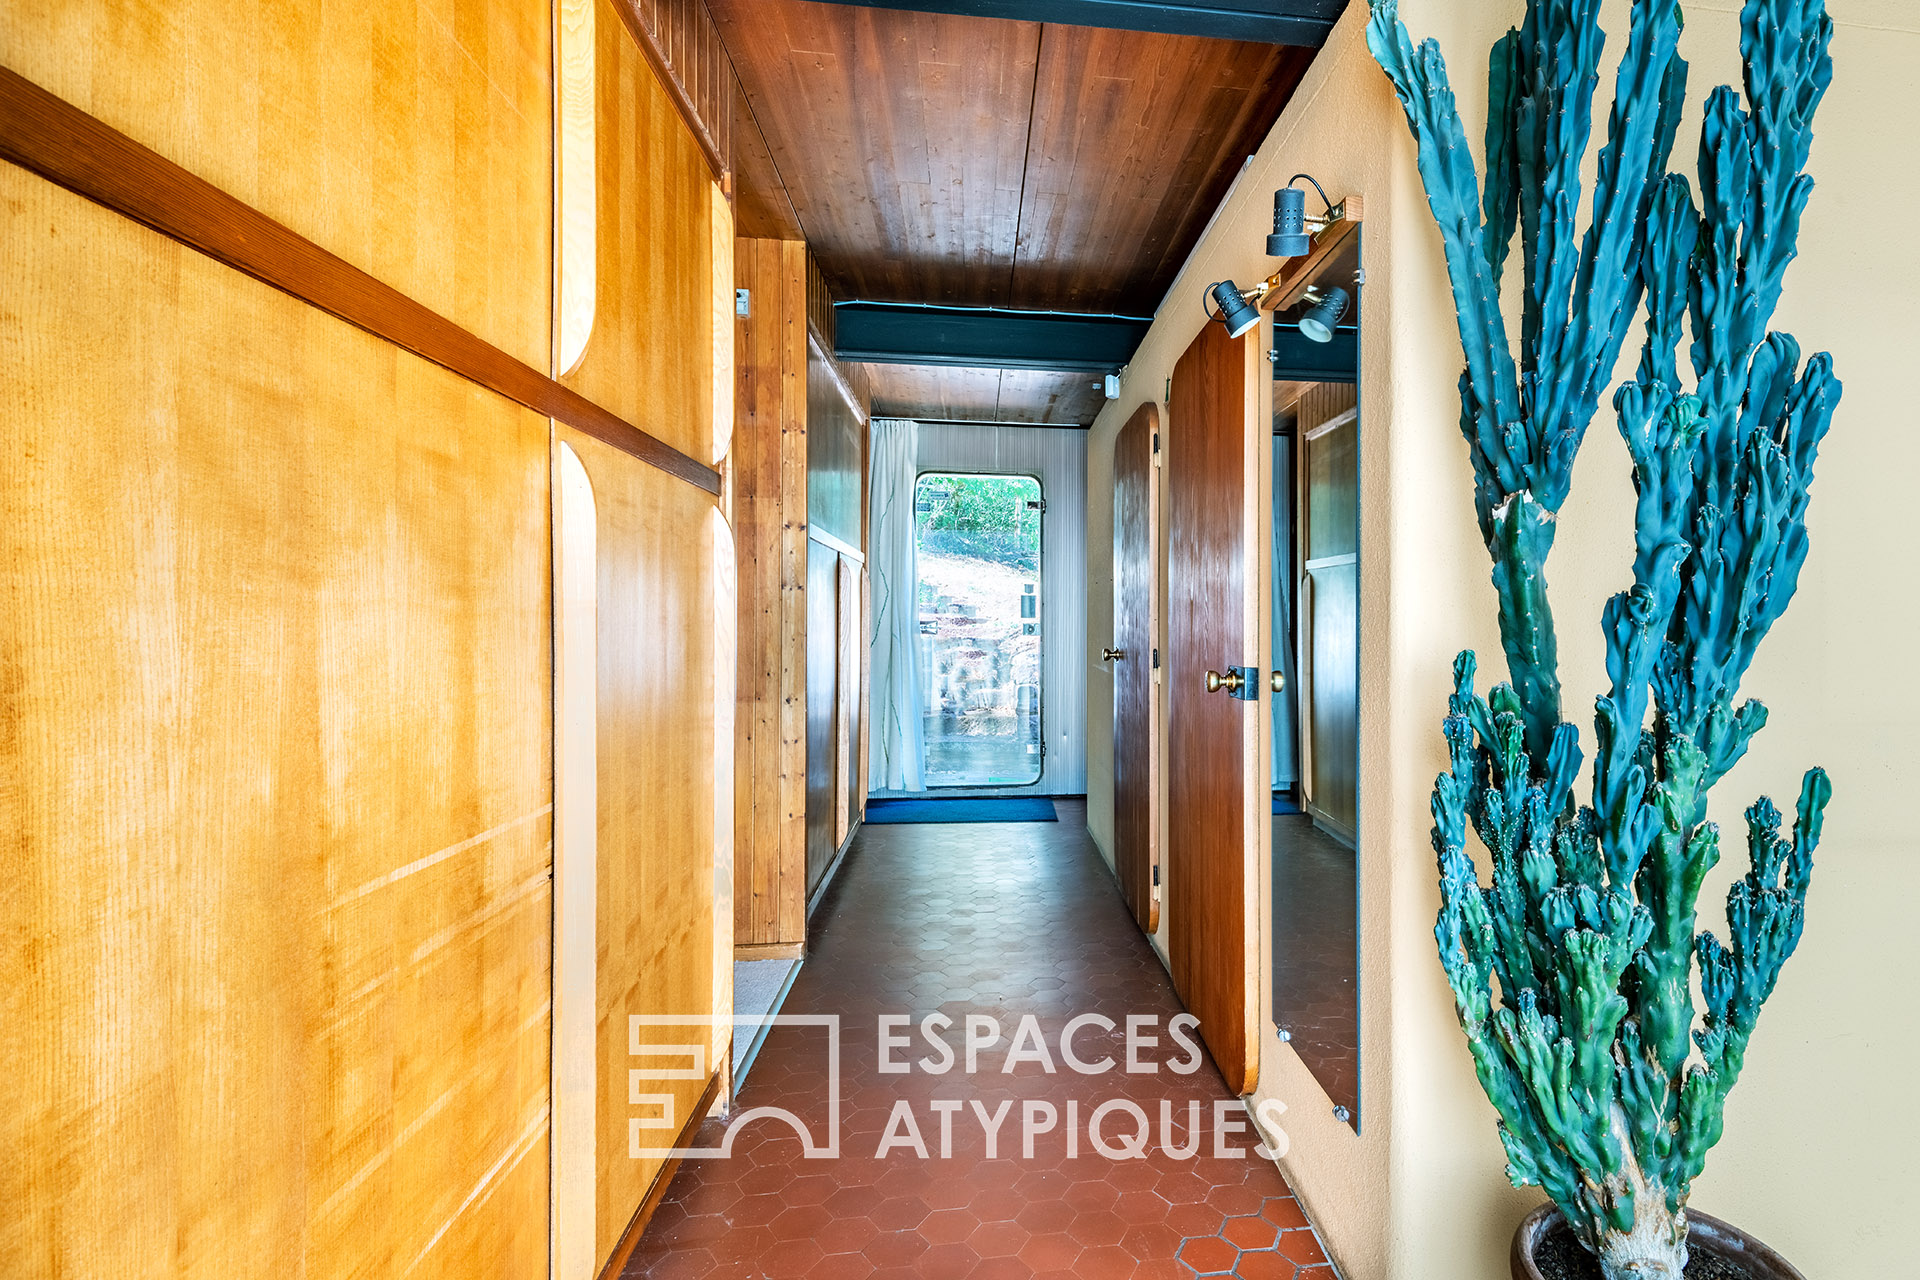 Maison Gauthier designed by Jean Prouvé for his daughter - now for sale